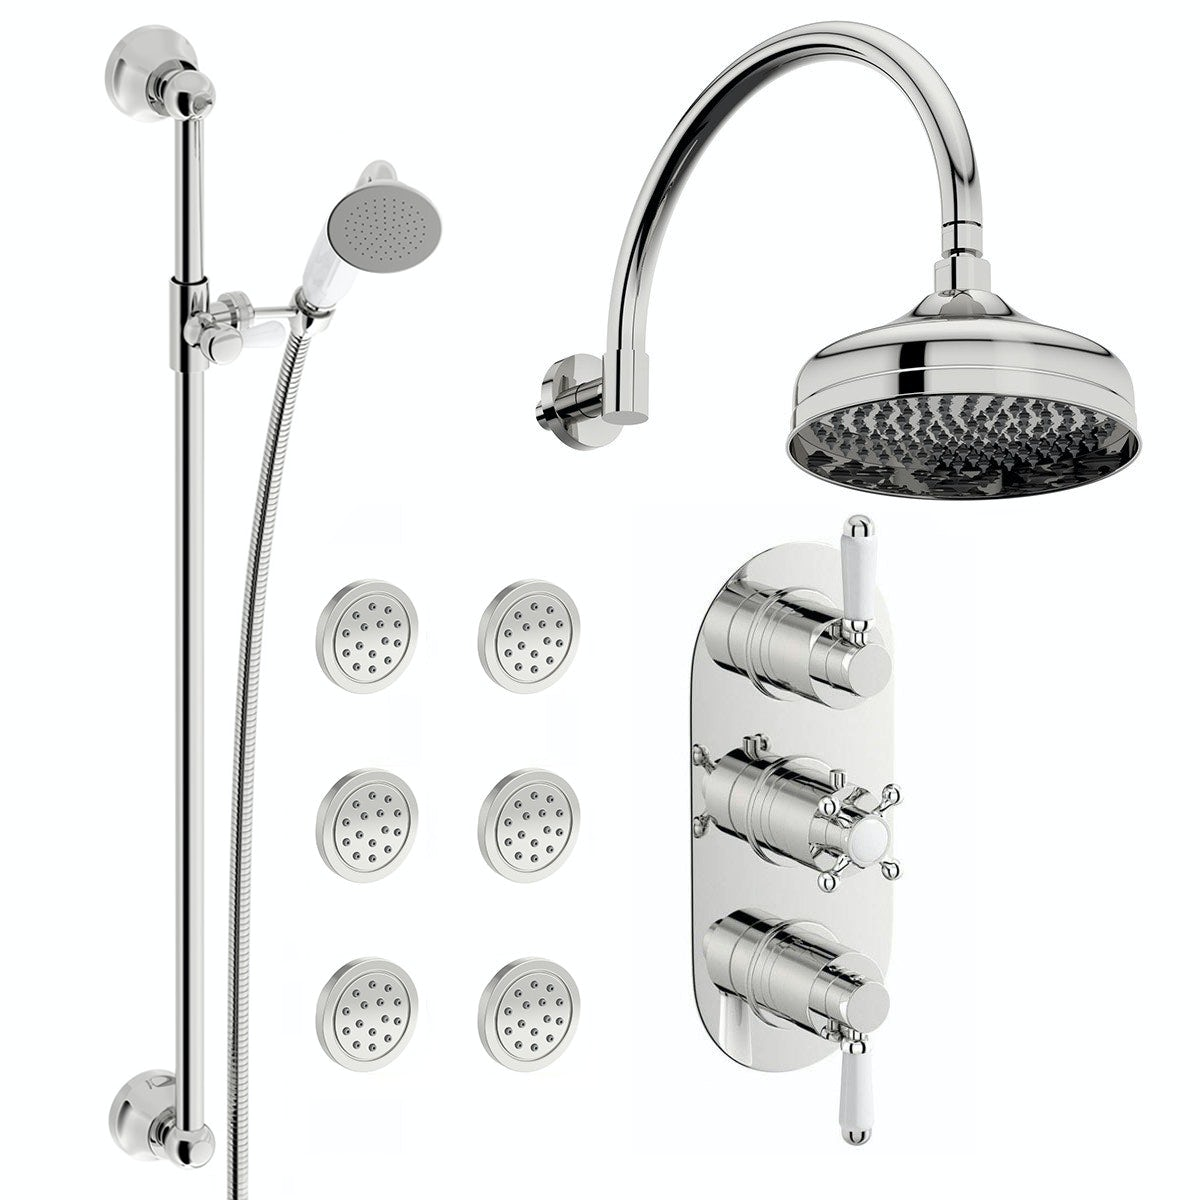 Coniston Complete Thermostatic Wall Shower Set